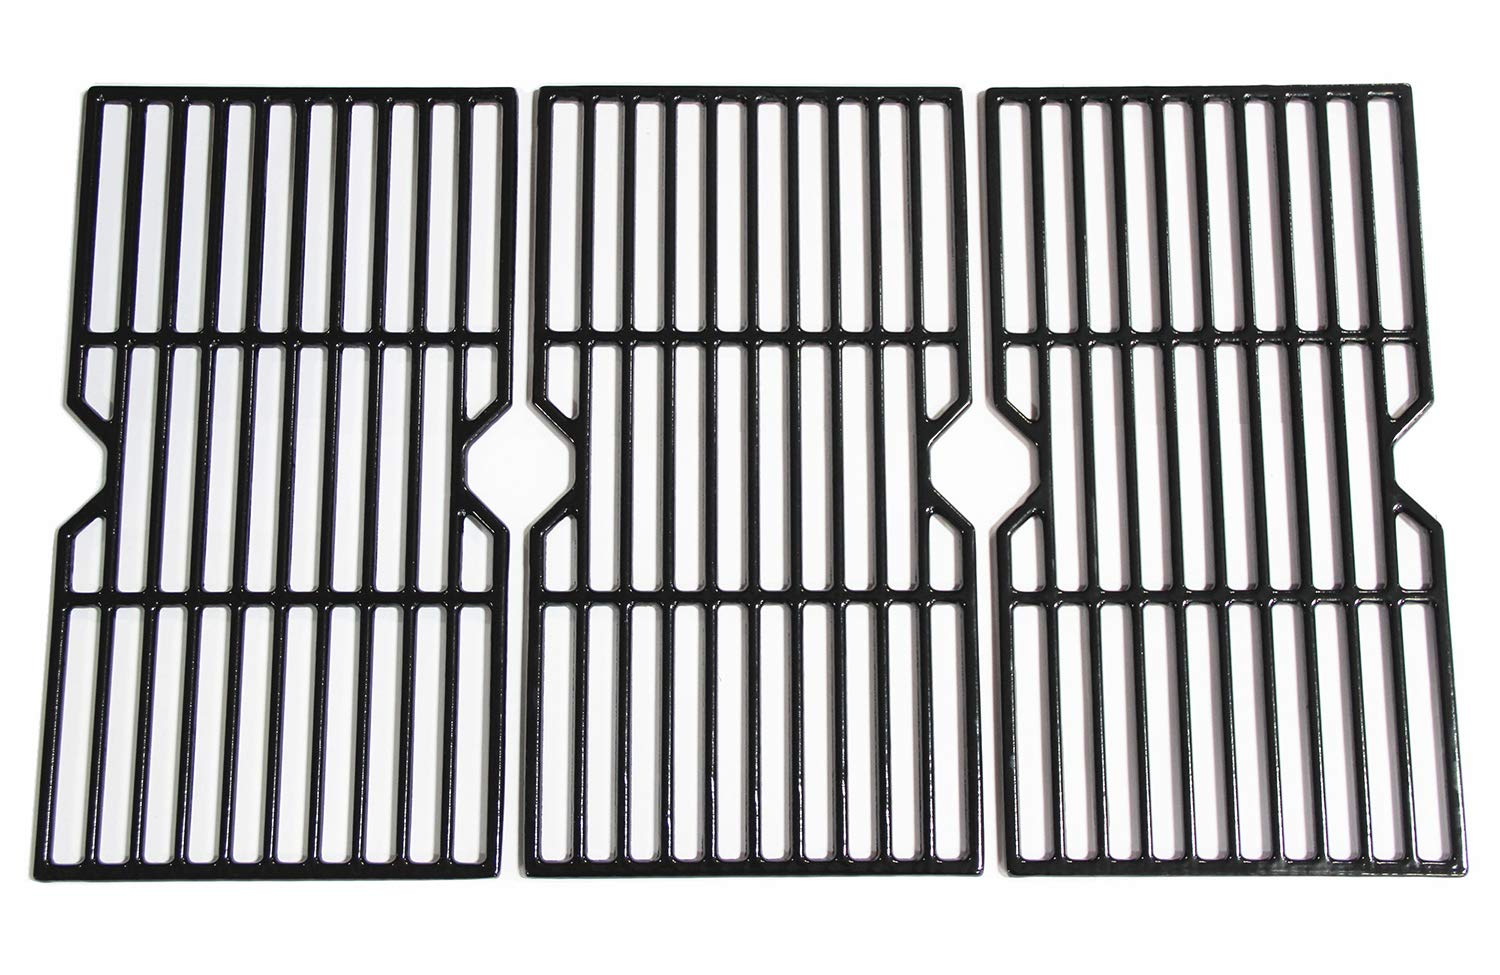 Hongso 16 7/8'' Polished Porcelain Coated Cast Iron Gas Grill Grates Replacement for Charbroil 463436213, 463436214, 463436215, 463420508, 463420509, 463440109, 463441312, 463441514 Grills, PCH763 by Hongso